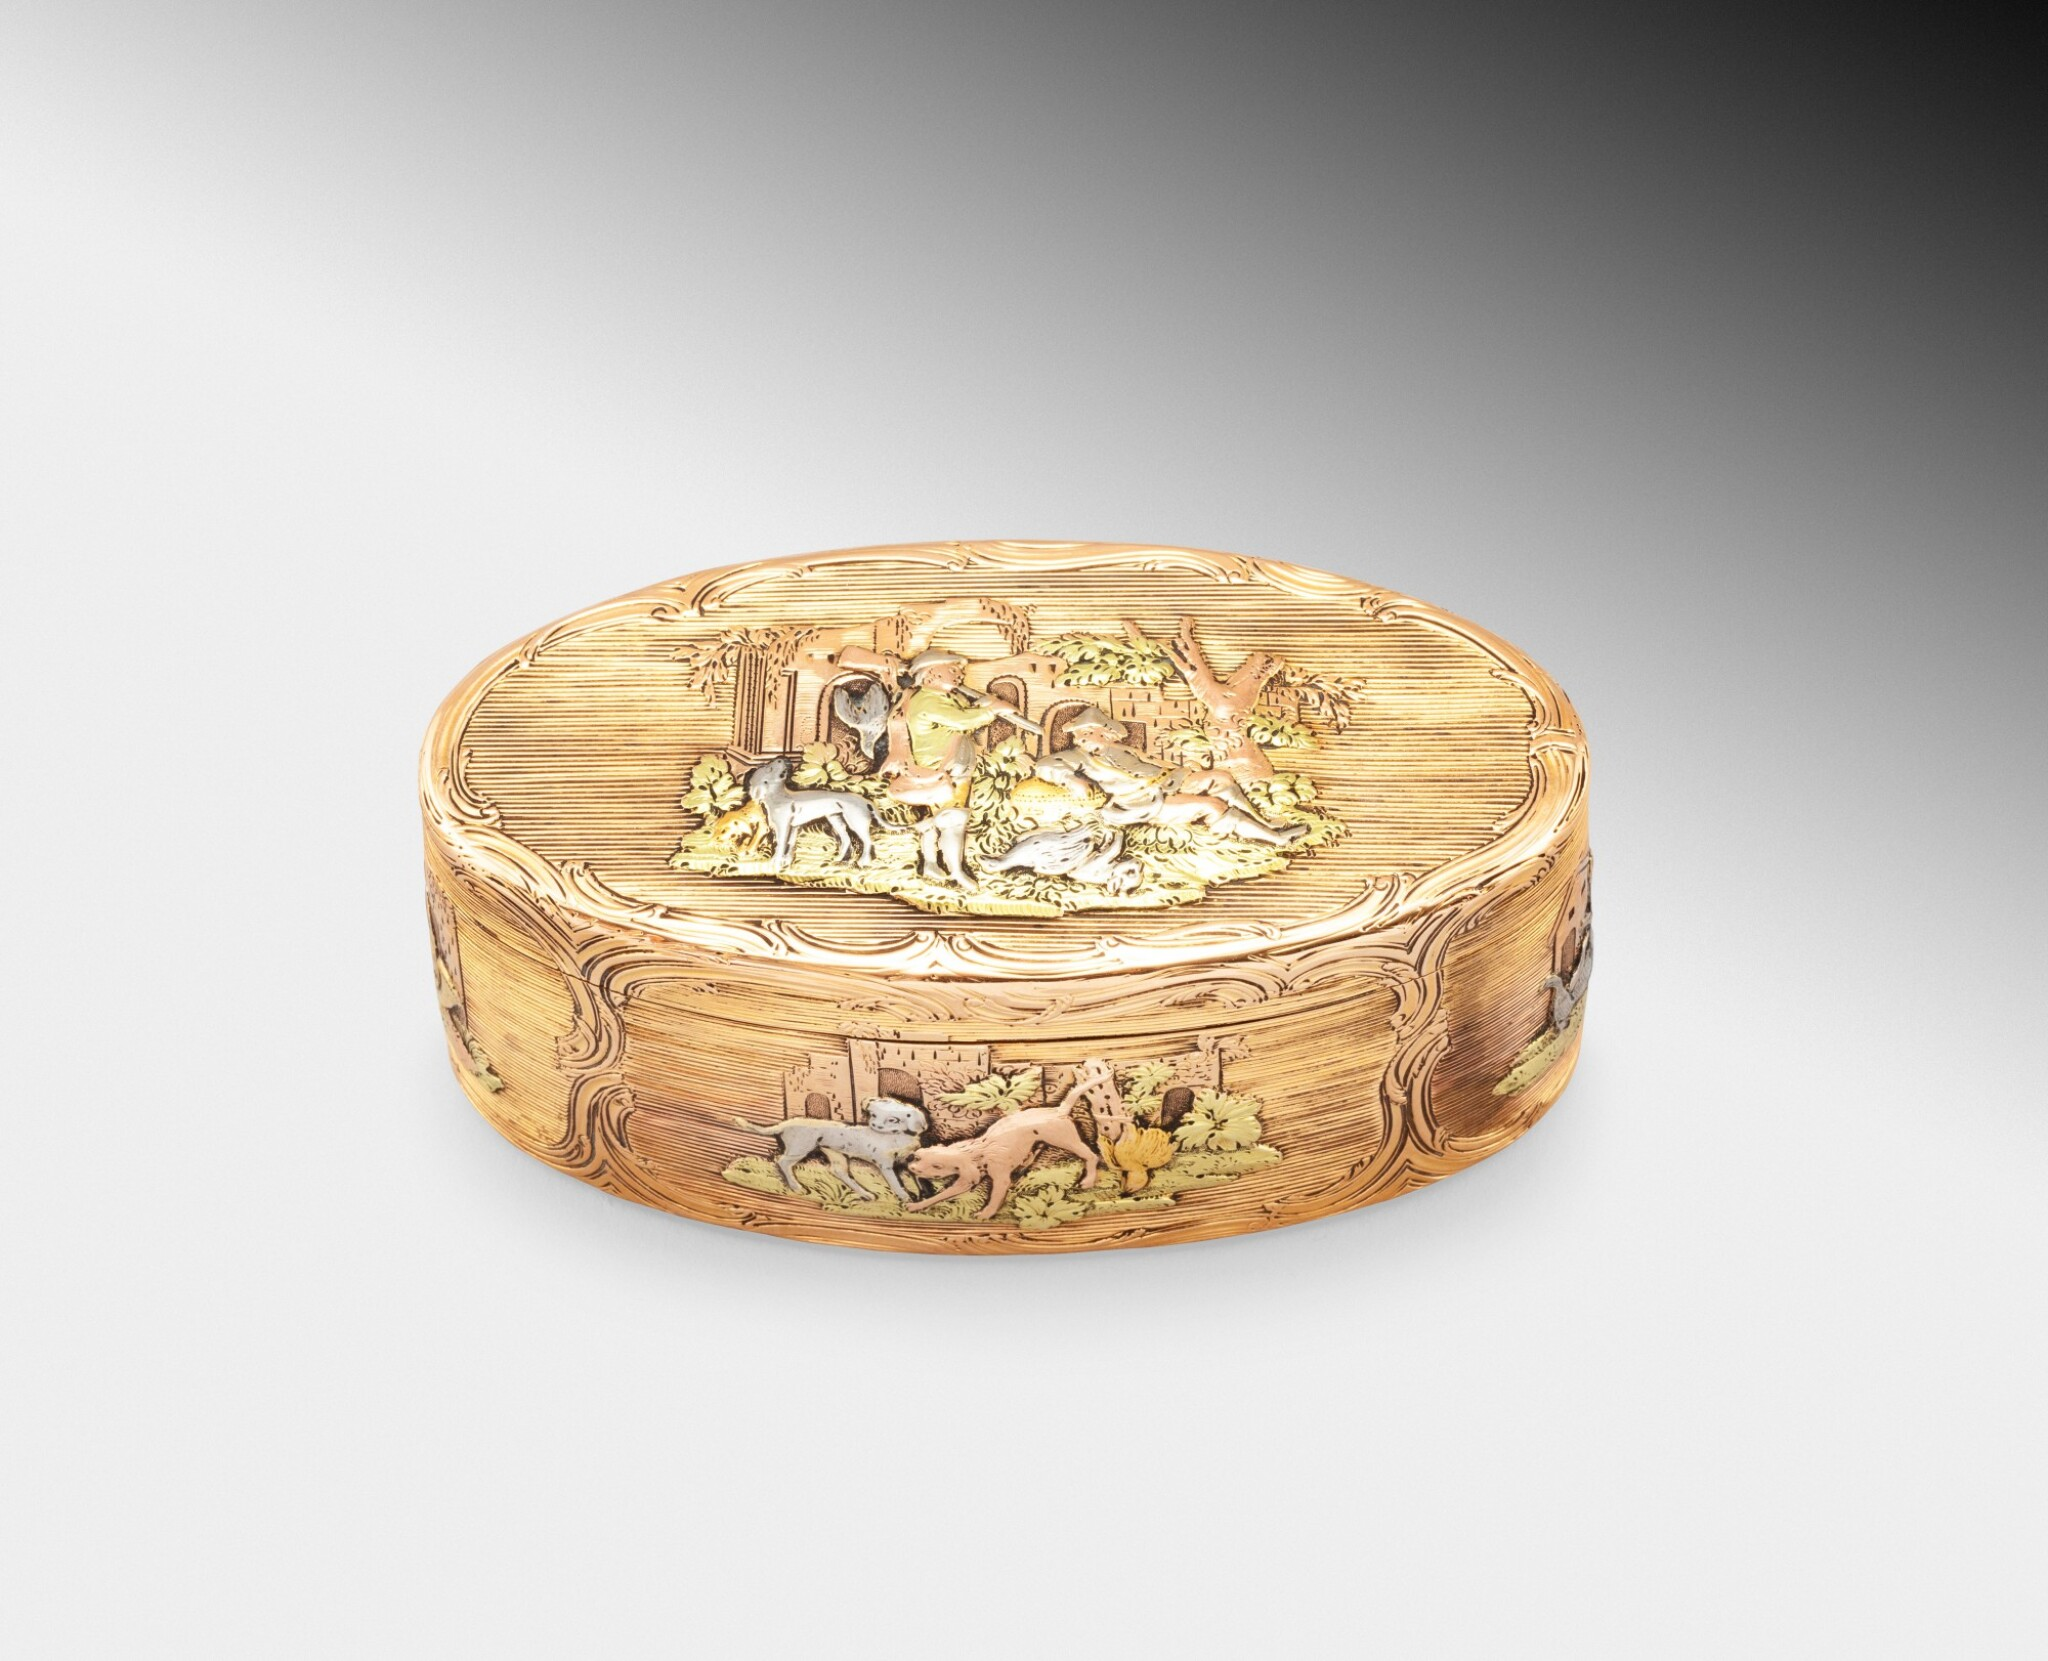 View full screen - View 1 of Lot 220. A probably German oval three-color gold box, probably Hanau, circa 1790   Boîte ovale en or de trois couleurs, probablement Hanau, vers 1790.